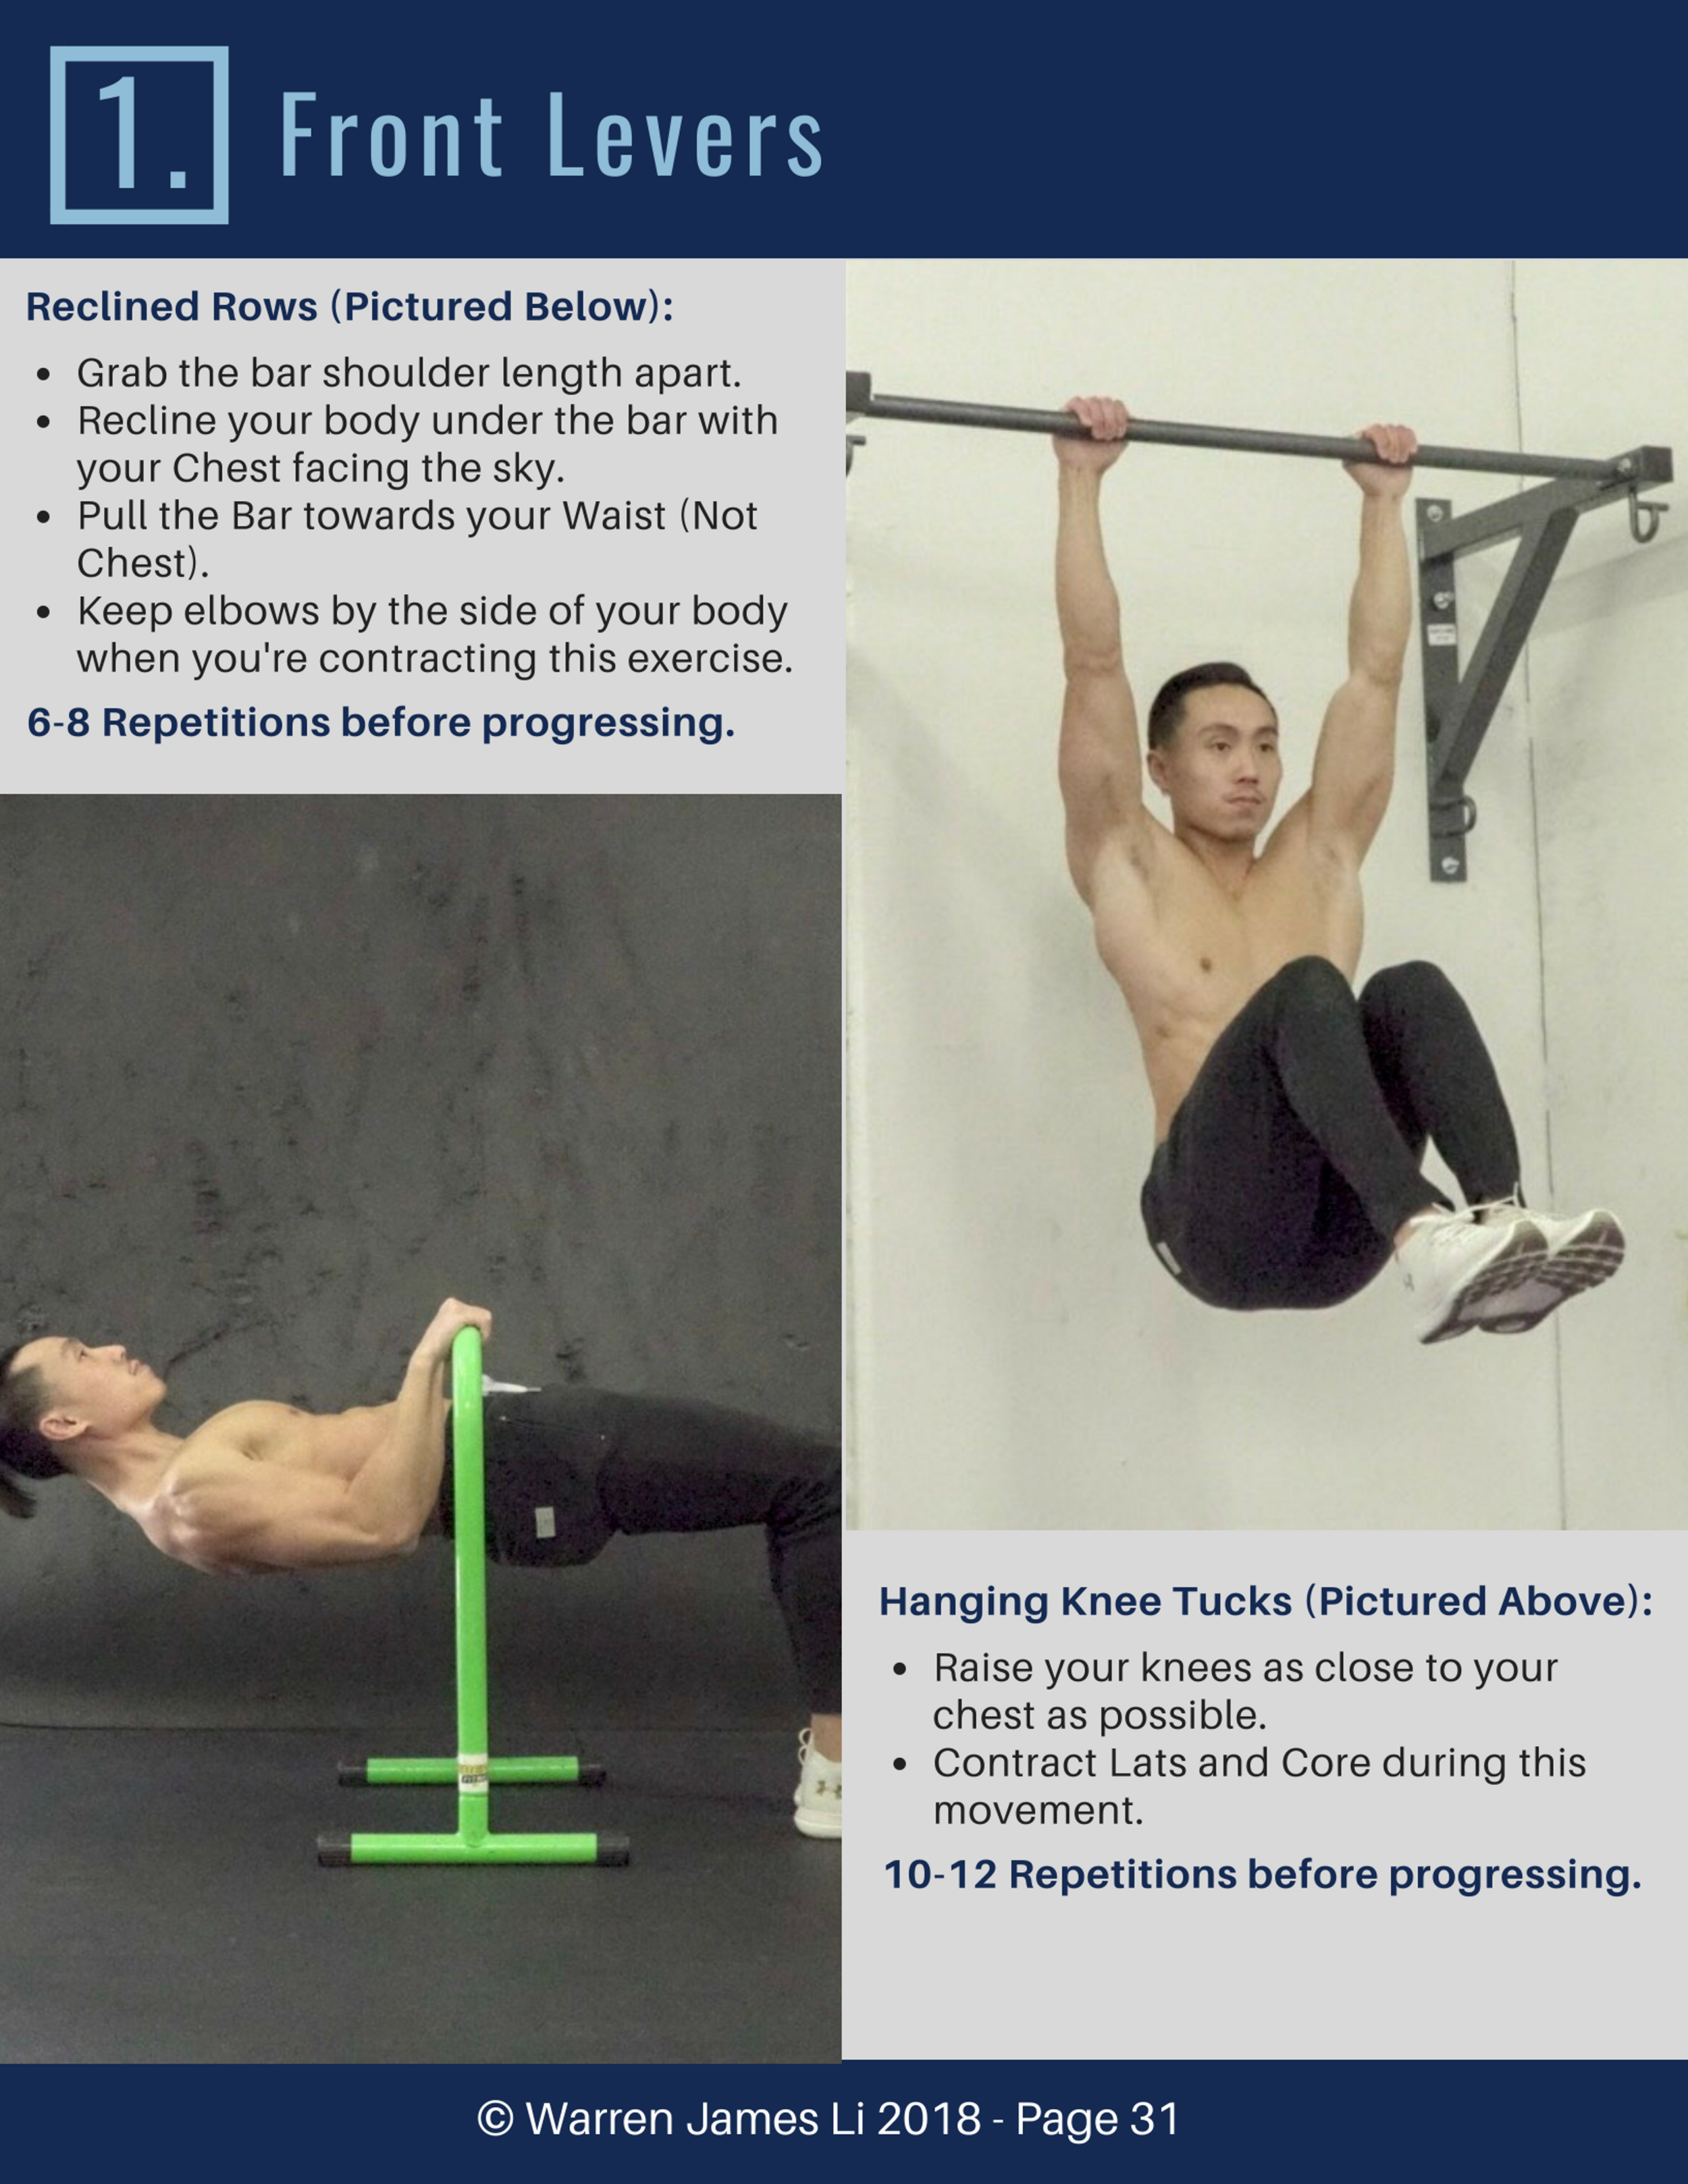 5. Front Lever 9 ExercisesTo Get Strong With Calisthenics.png